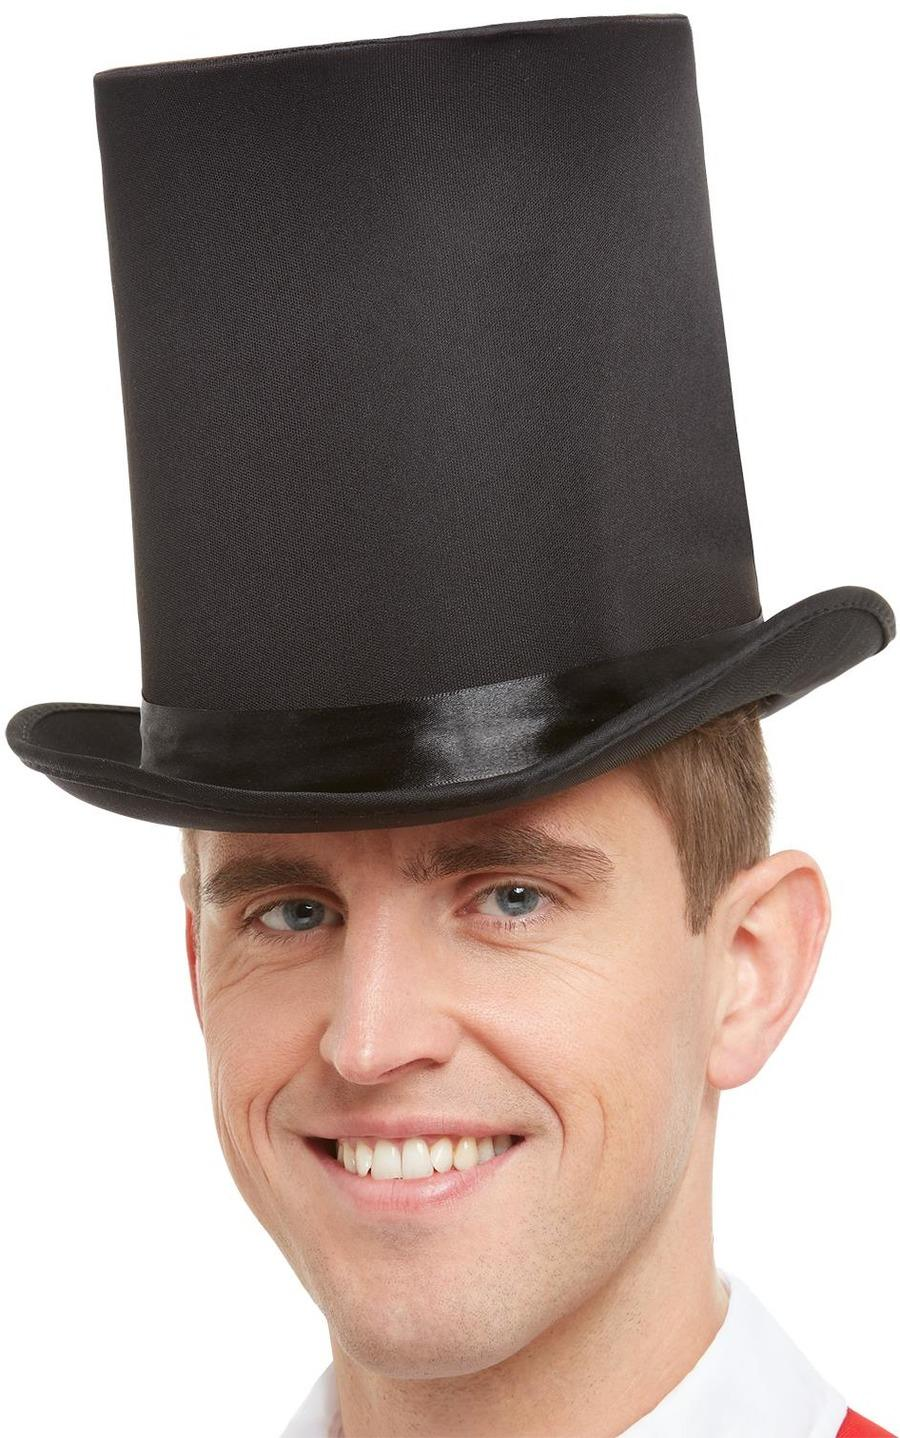 Deluxe Stovepipe Top Hat Black